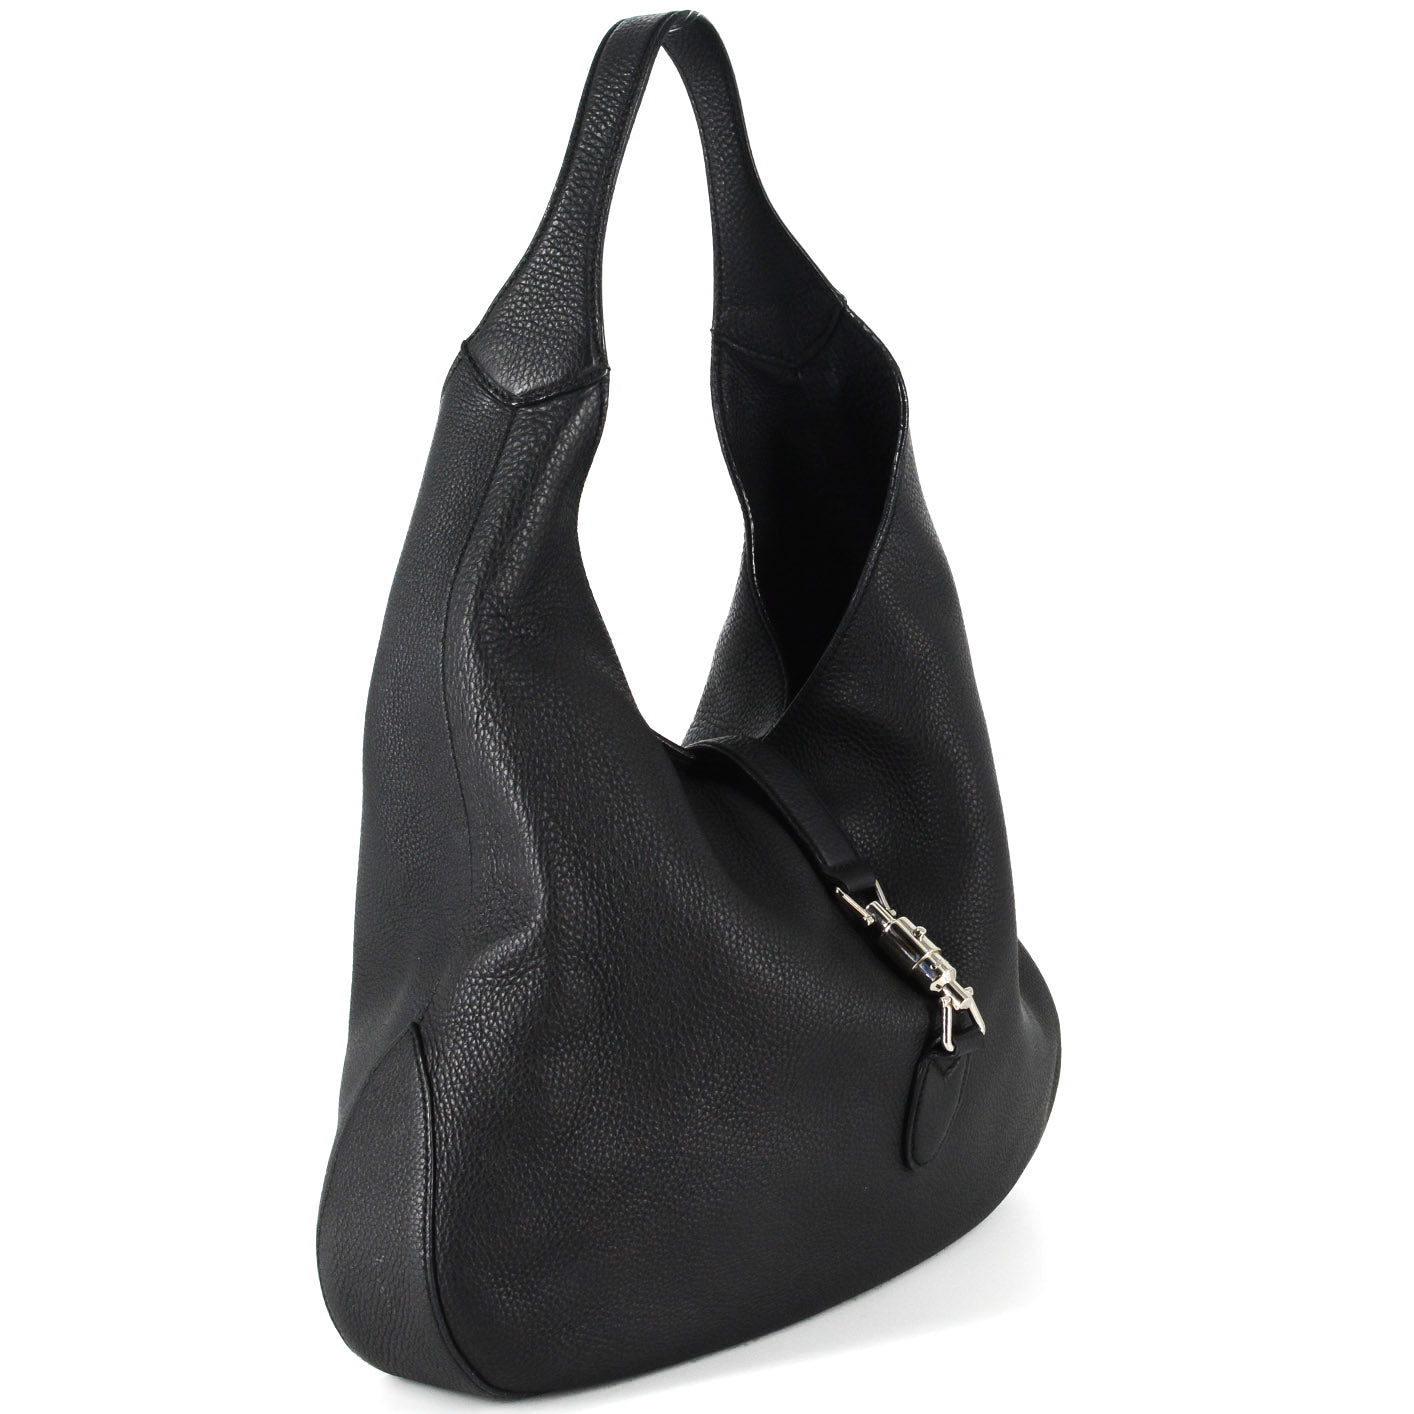 5a9c37709 ... Load image into Gallery viewer, GUCCI Soft Leather Hobo Bag in Black ...